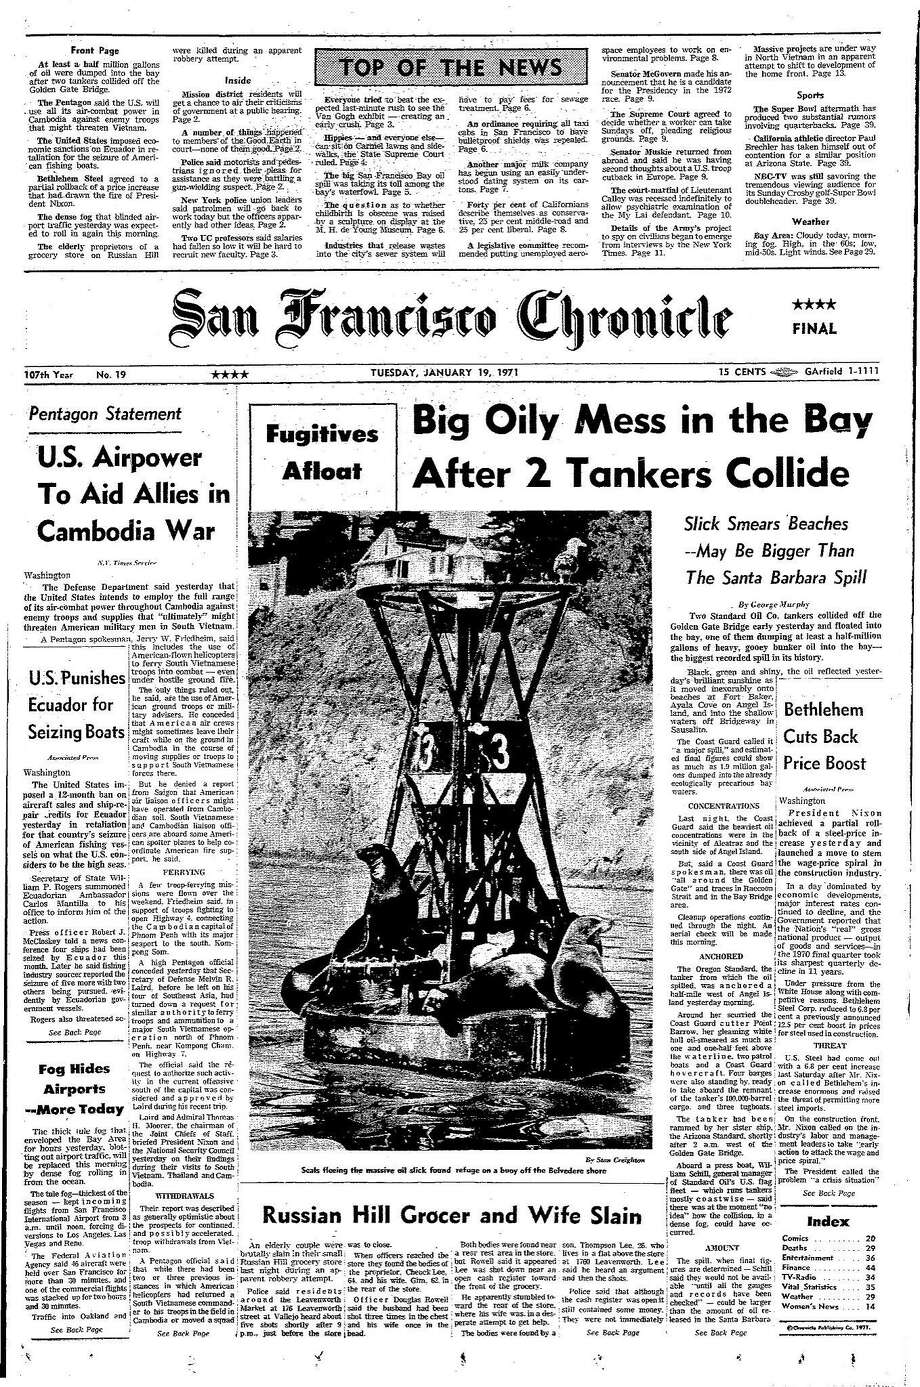 Chronicle Covers: San Francisco Bay's oil spill for the ages